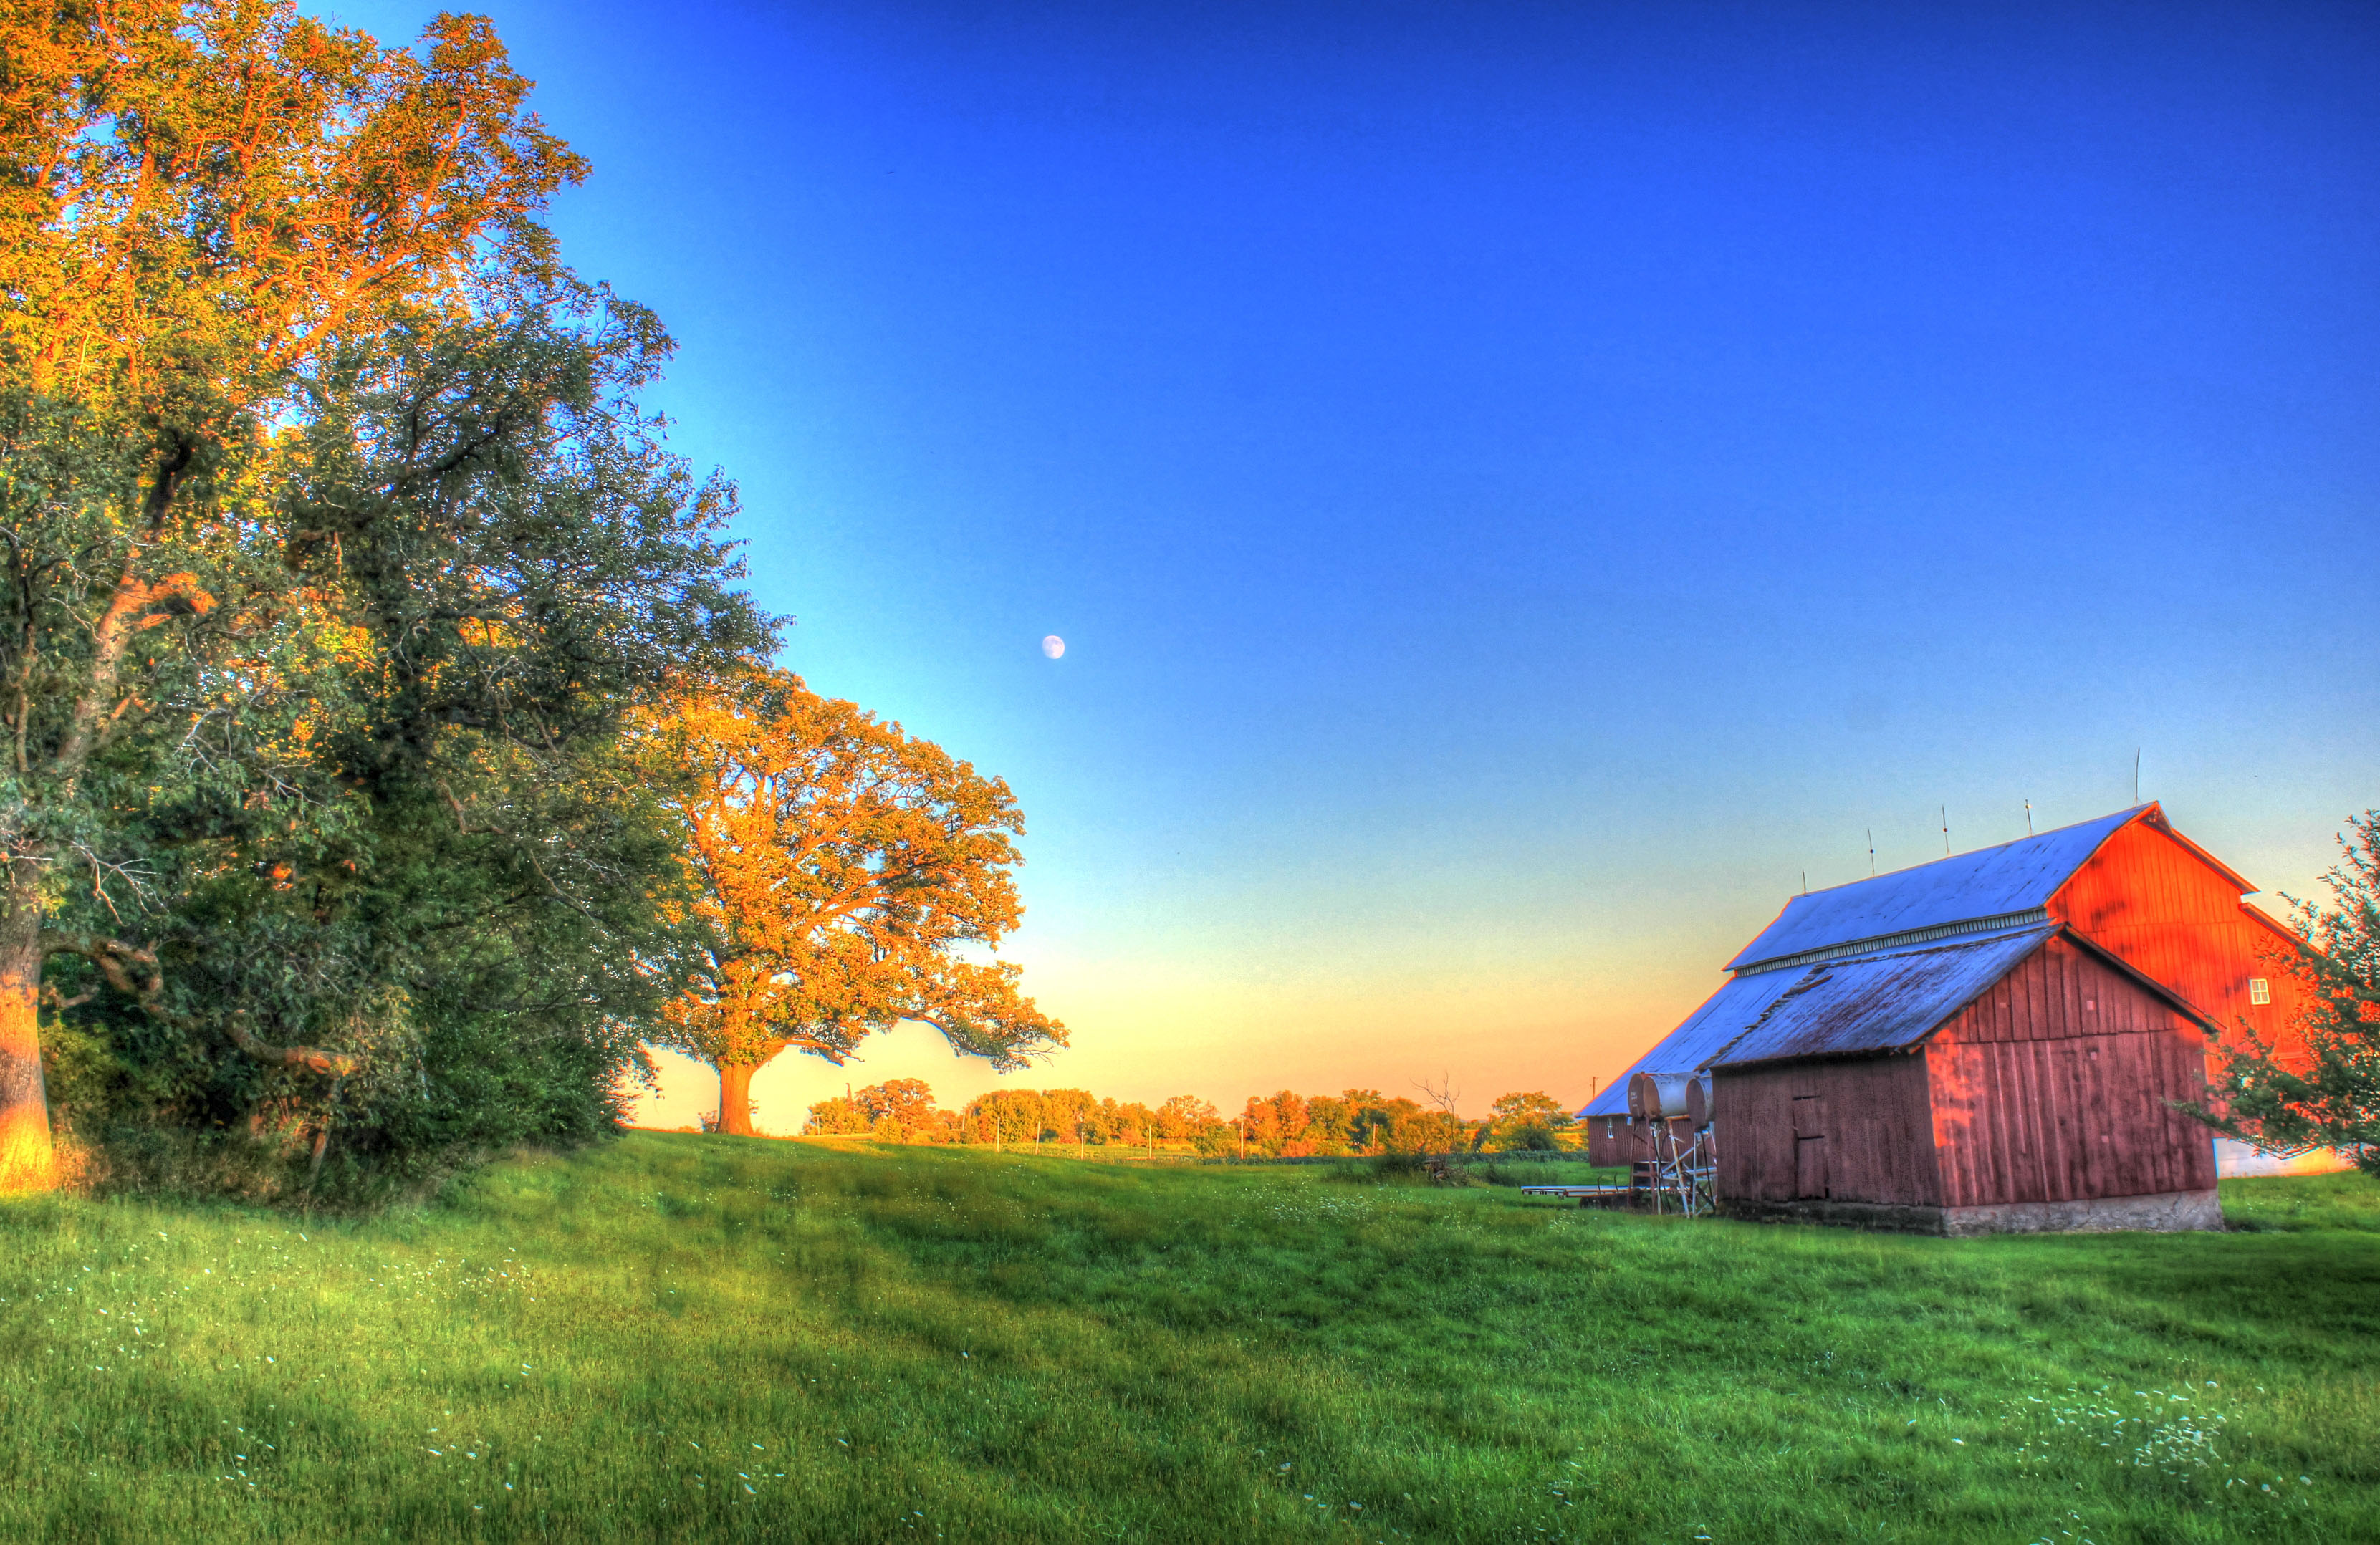 Barn And Landscape At Charles Mound Illinois Image Free